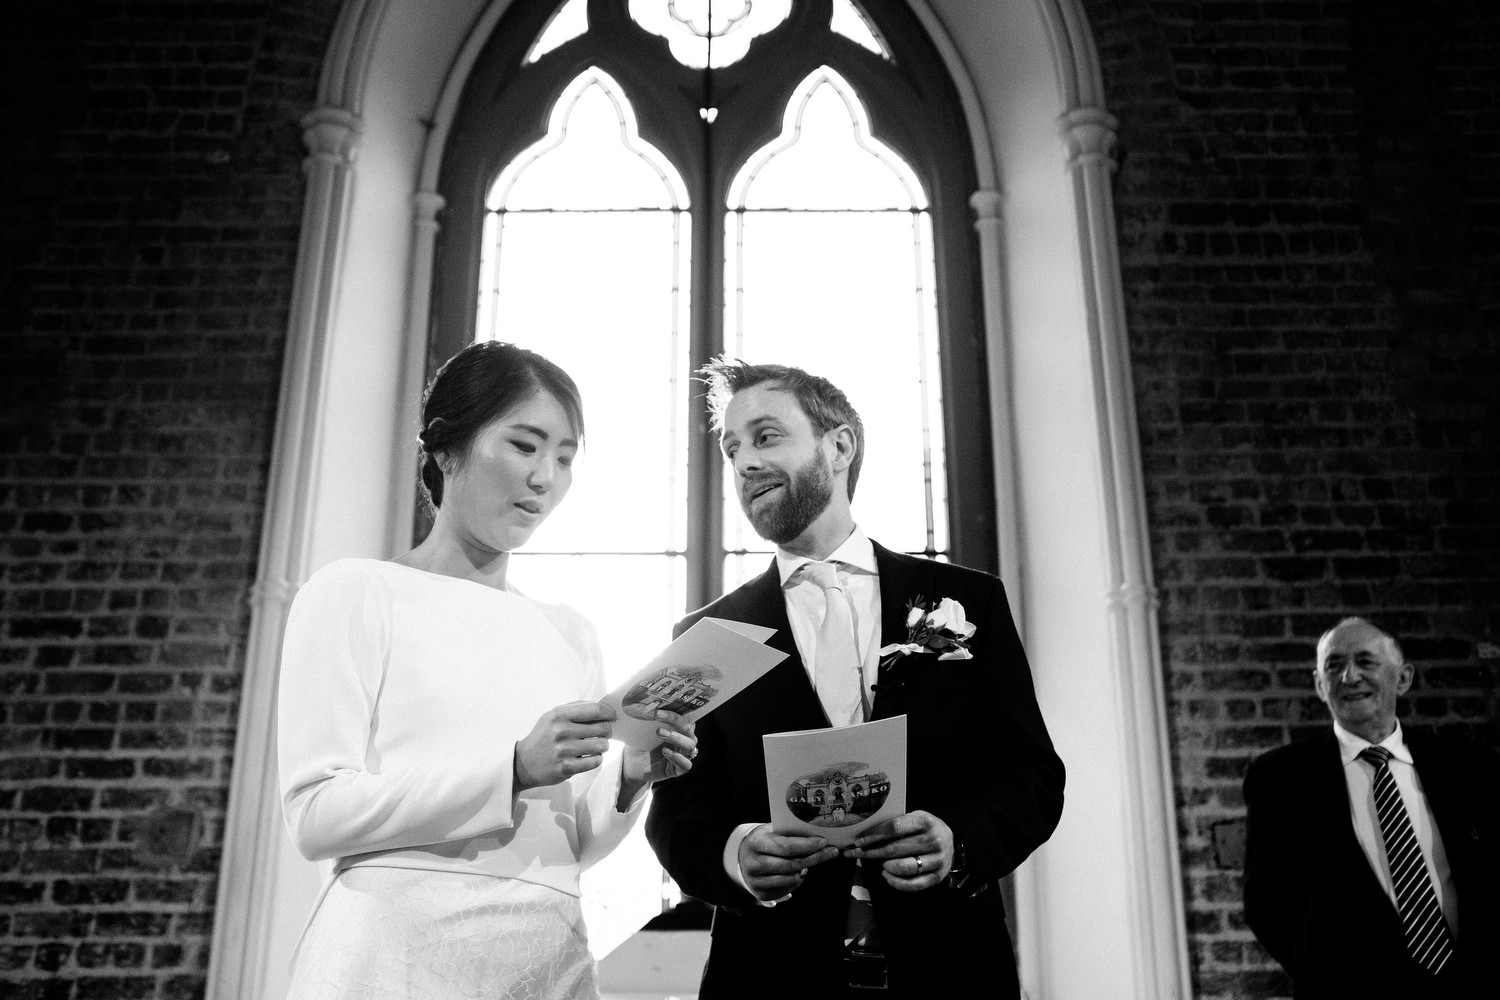 dmp0300_dublin_alley_photography_david_mcclelland_ceremony_humanist_documentary_theatre_smock_wedding_photographer